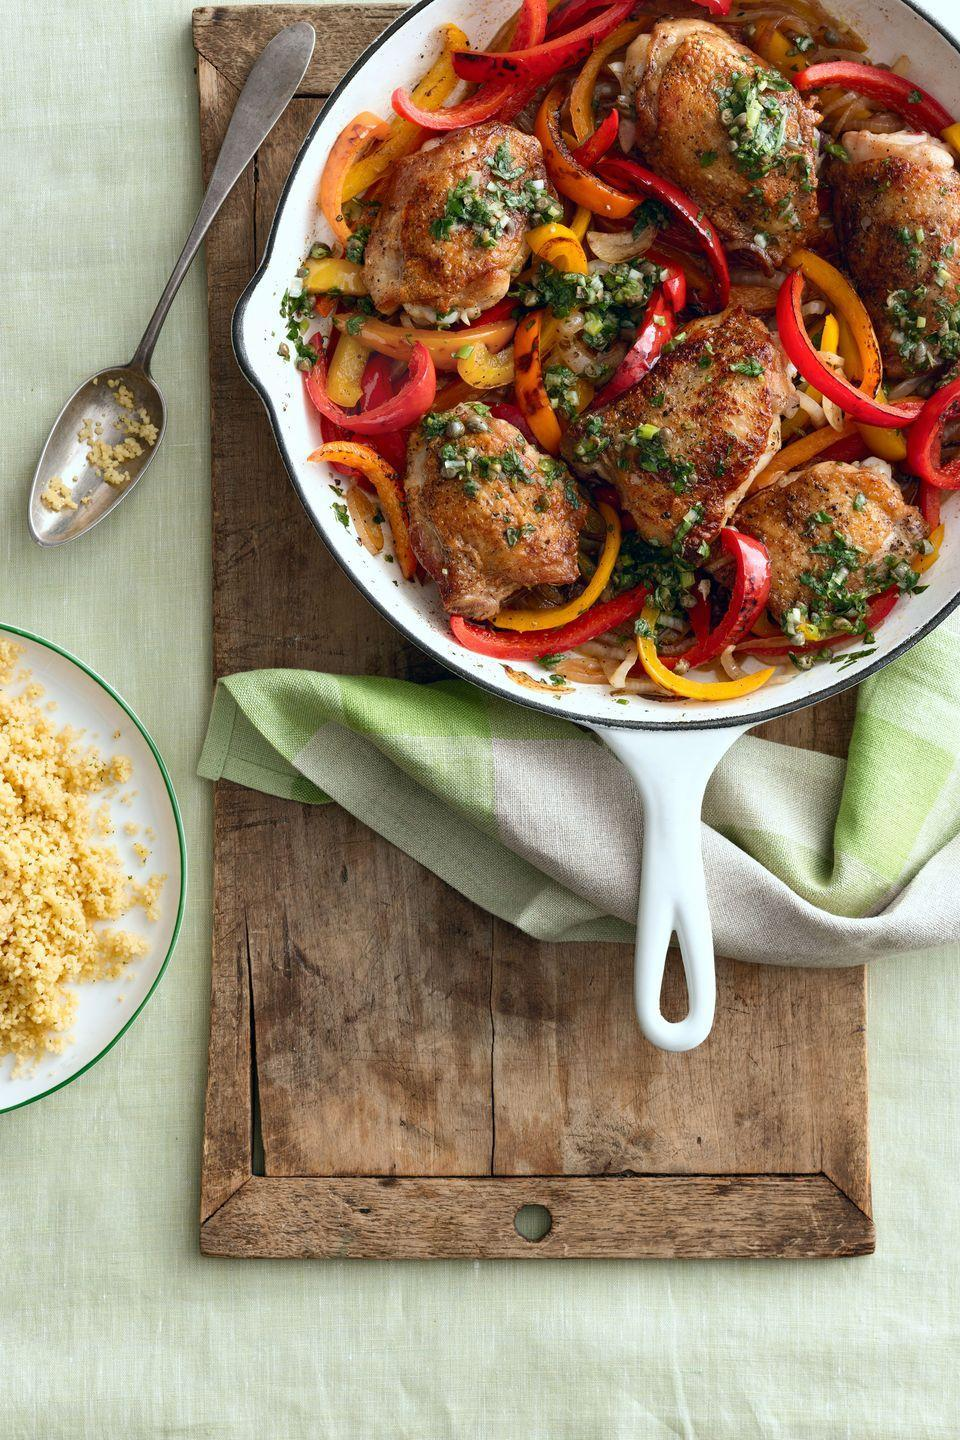 """<p>Spice up your weeknight dinner with this quick and easy chicken recipe.</p><p><strong><a href=""""https://www.countryliving.com/food-drinks/recipes/a5501/crispy-chicken-thighs-with-peppers-and-salsa-verde-recipe-clx0914/"""" rel=""""nofollow noopener"""" target=""""_blank"""" data-ylk=""""slk:Get the recipe"""" class=""""link rapid-noclick-resp"""">Get the recipe</a>.</strong></p>"""